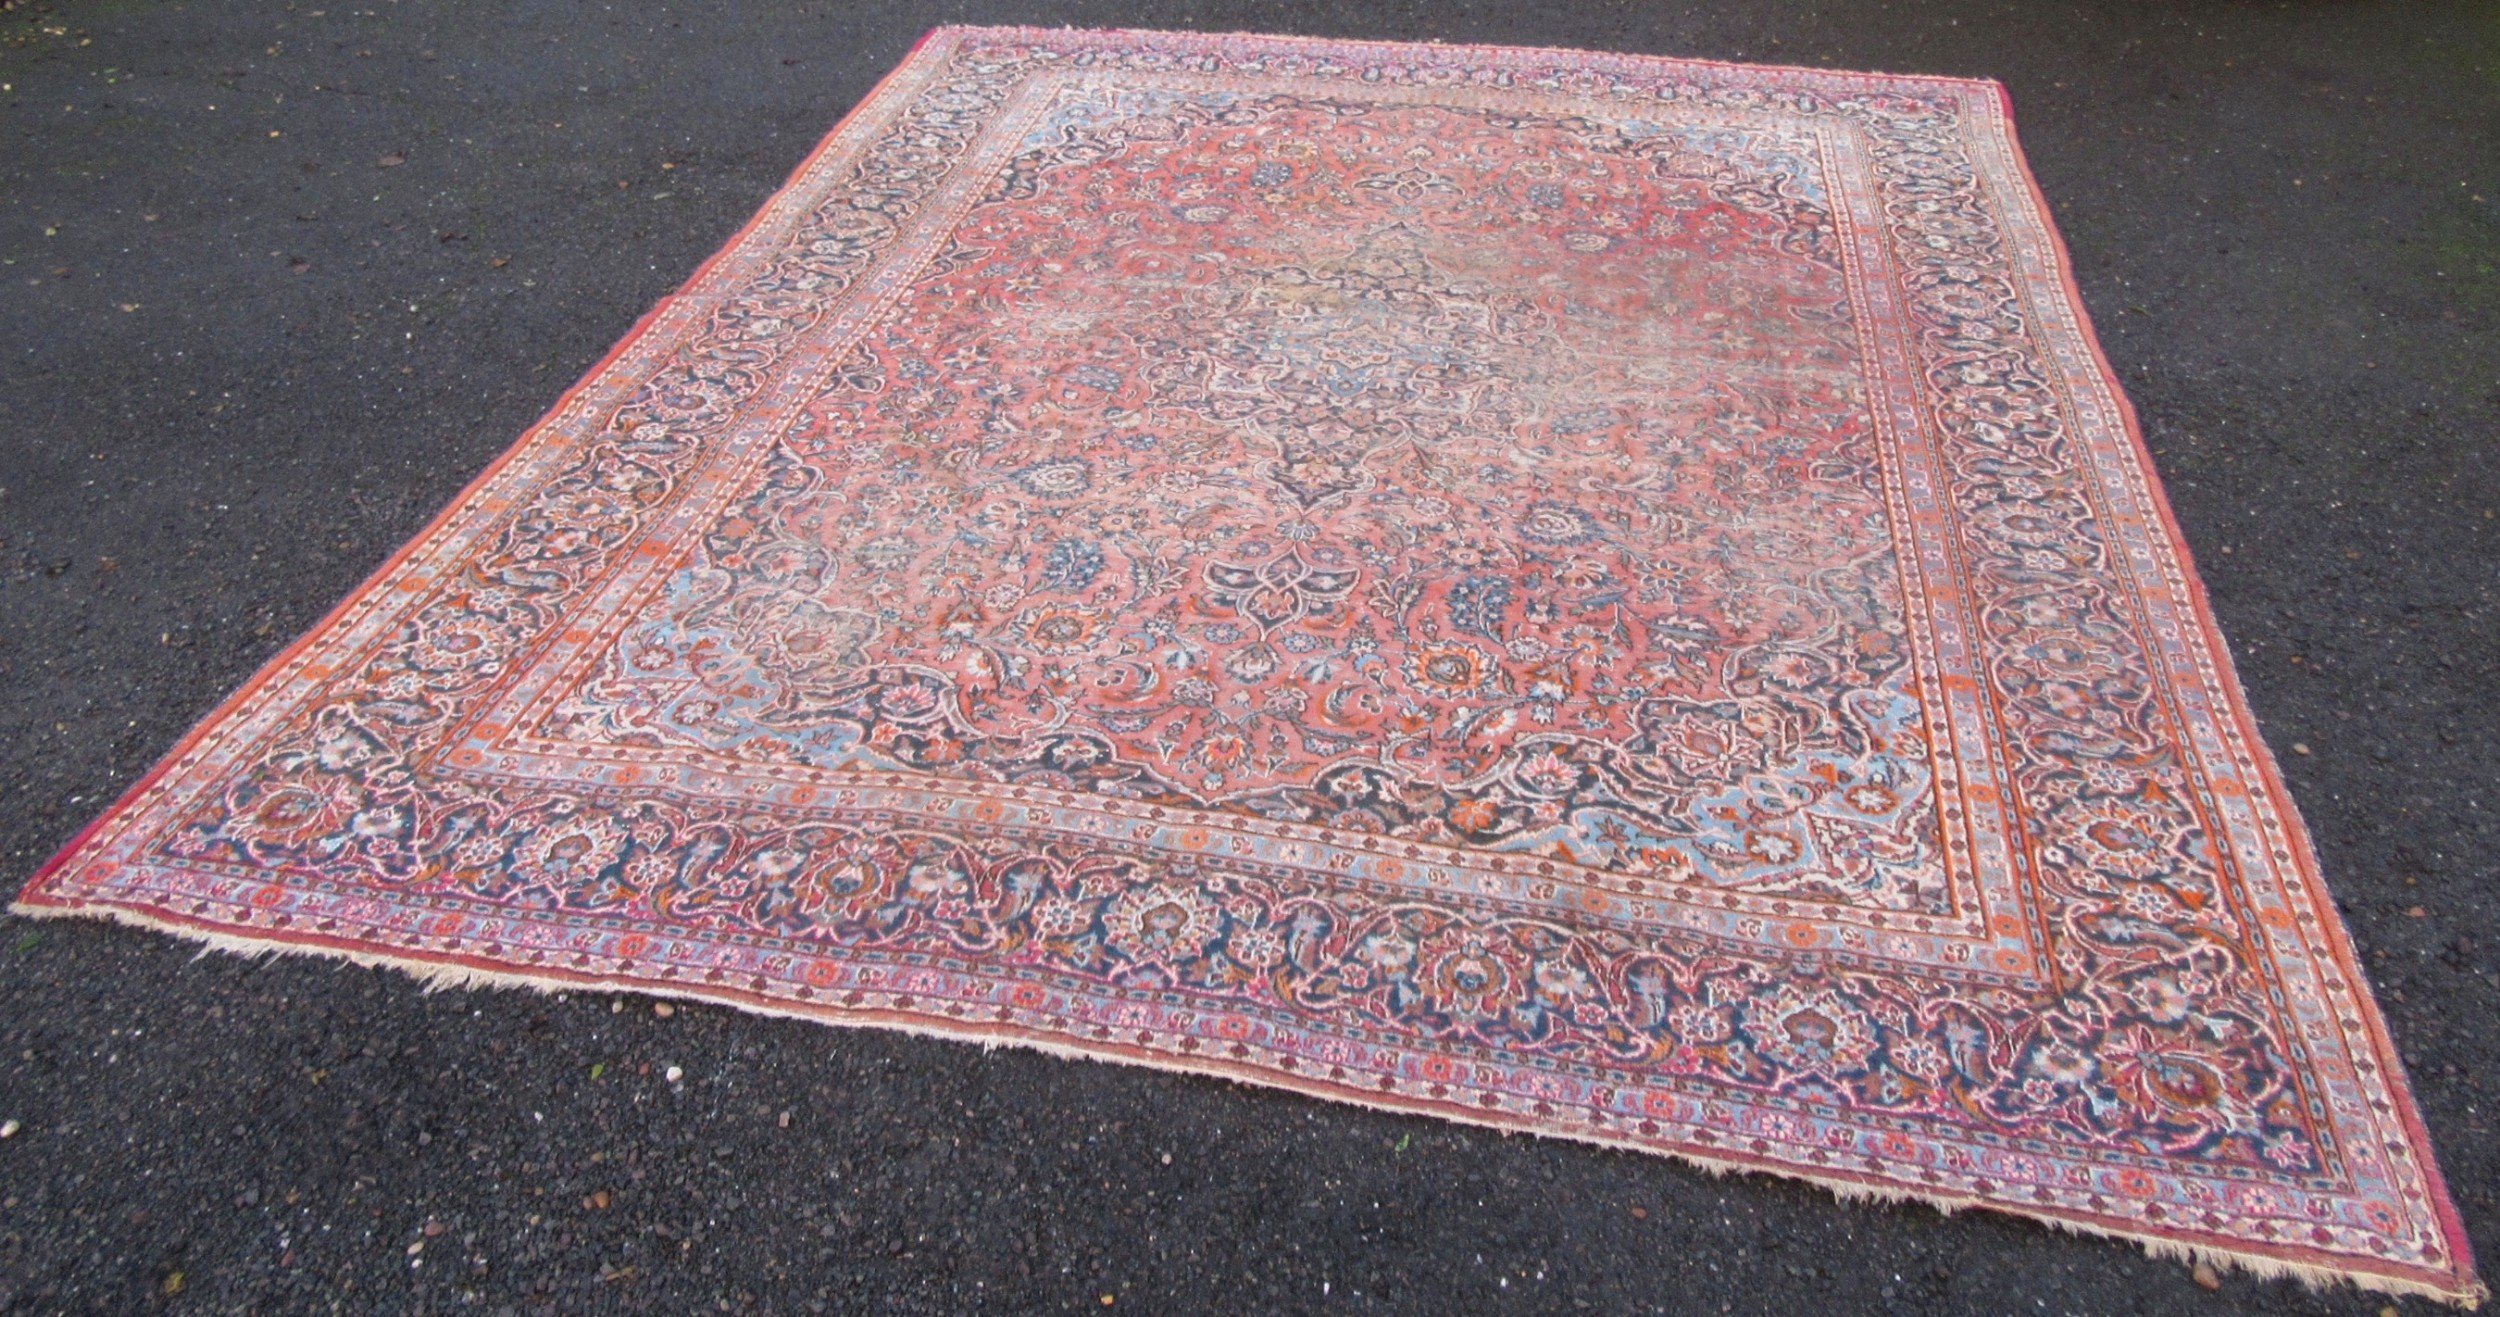 antique country house shabby chic persian kashan carpet 431cm x 325cm superb look